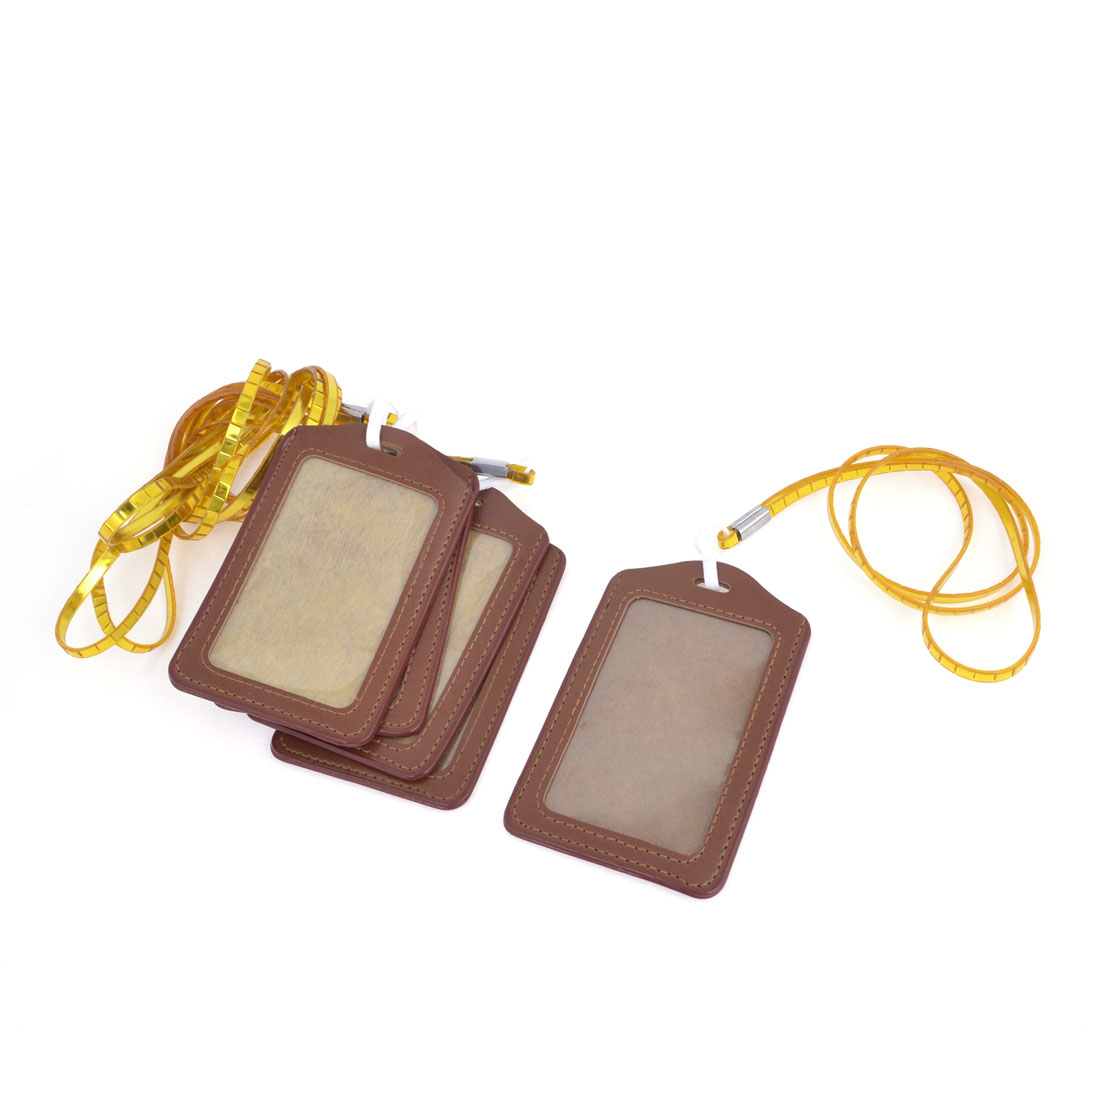 "5 Pcs Faux Leather Vertical Lanyard ID Card Holder Pouch 4.4""x2.8"" Yellow Brown"